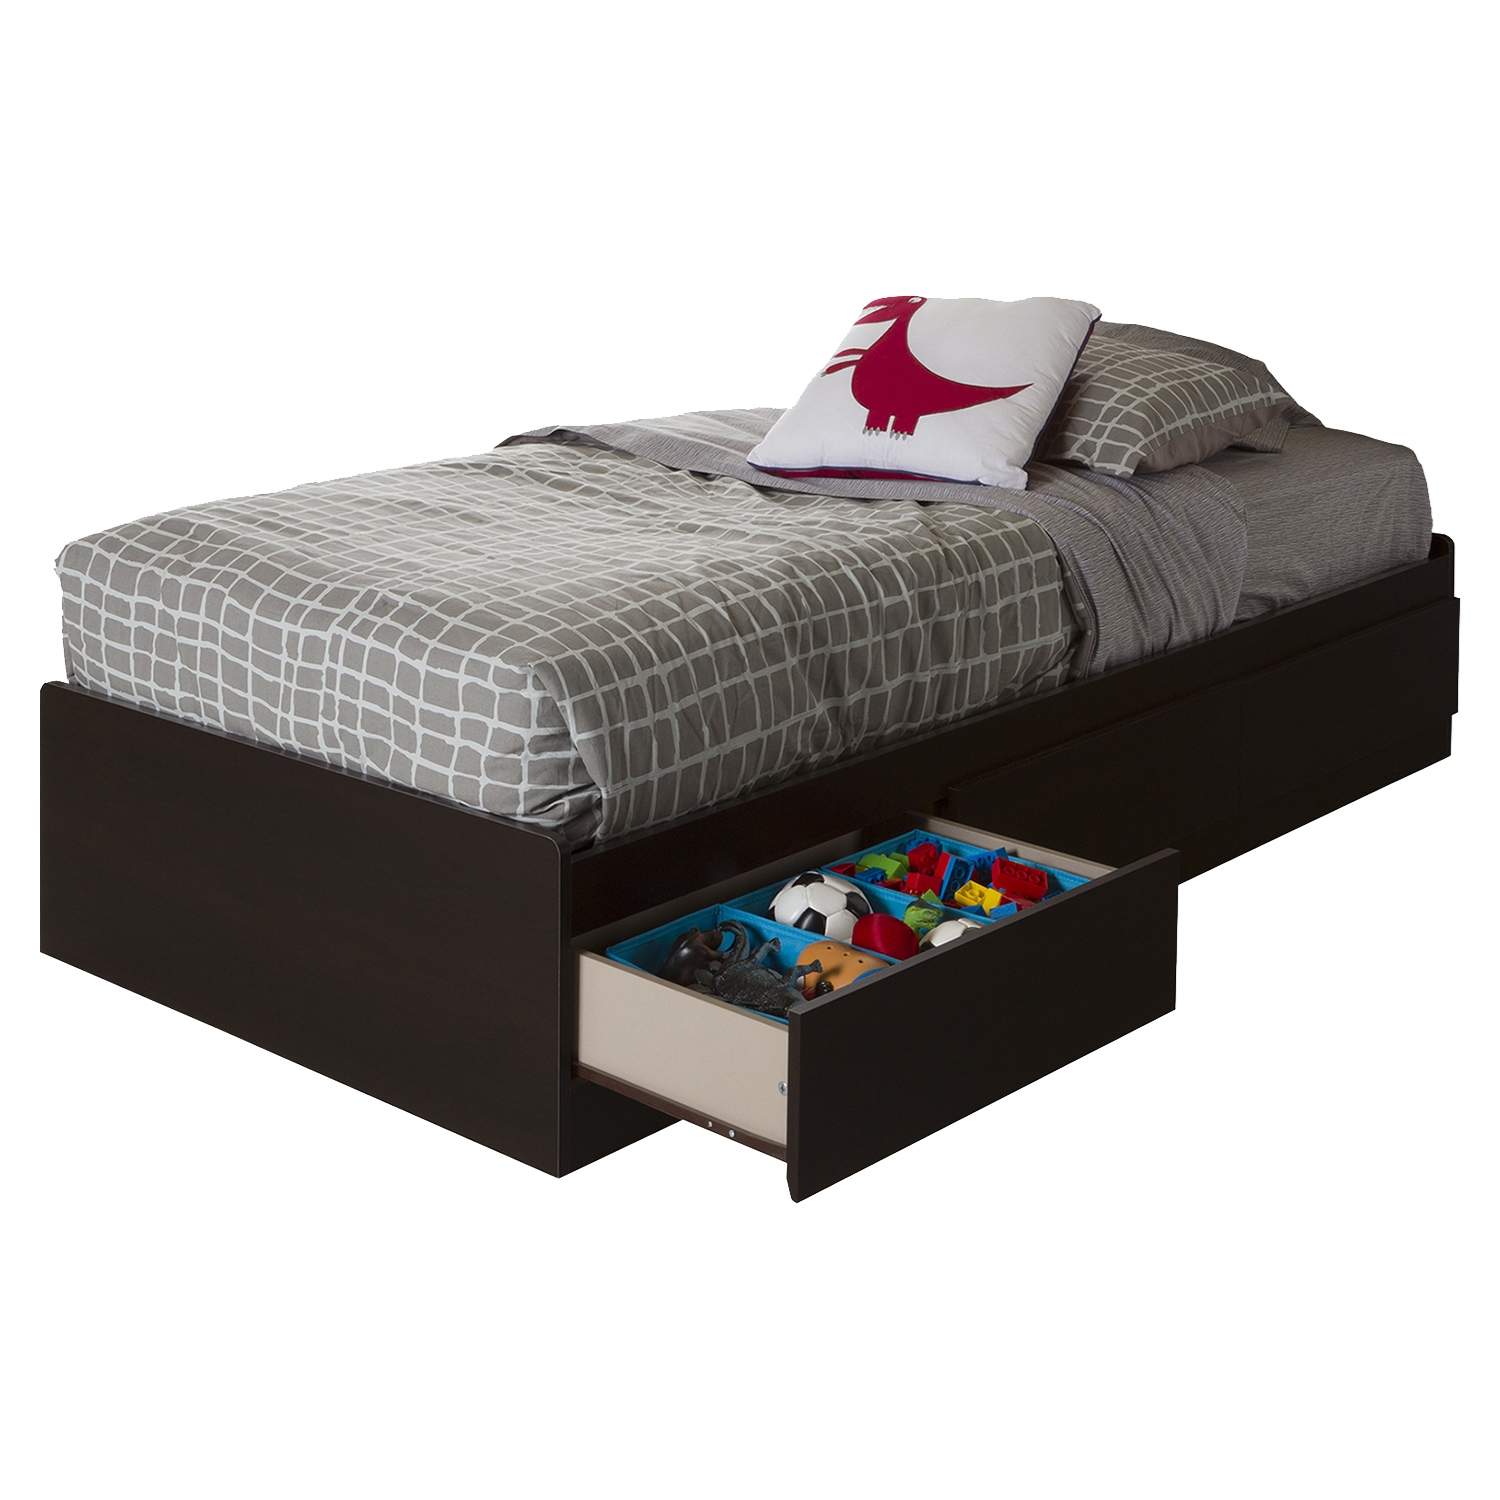 Vito Twin Mates Bed - 3 Drawers, Chocolate - SS-10204